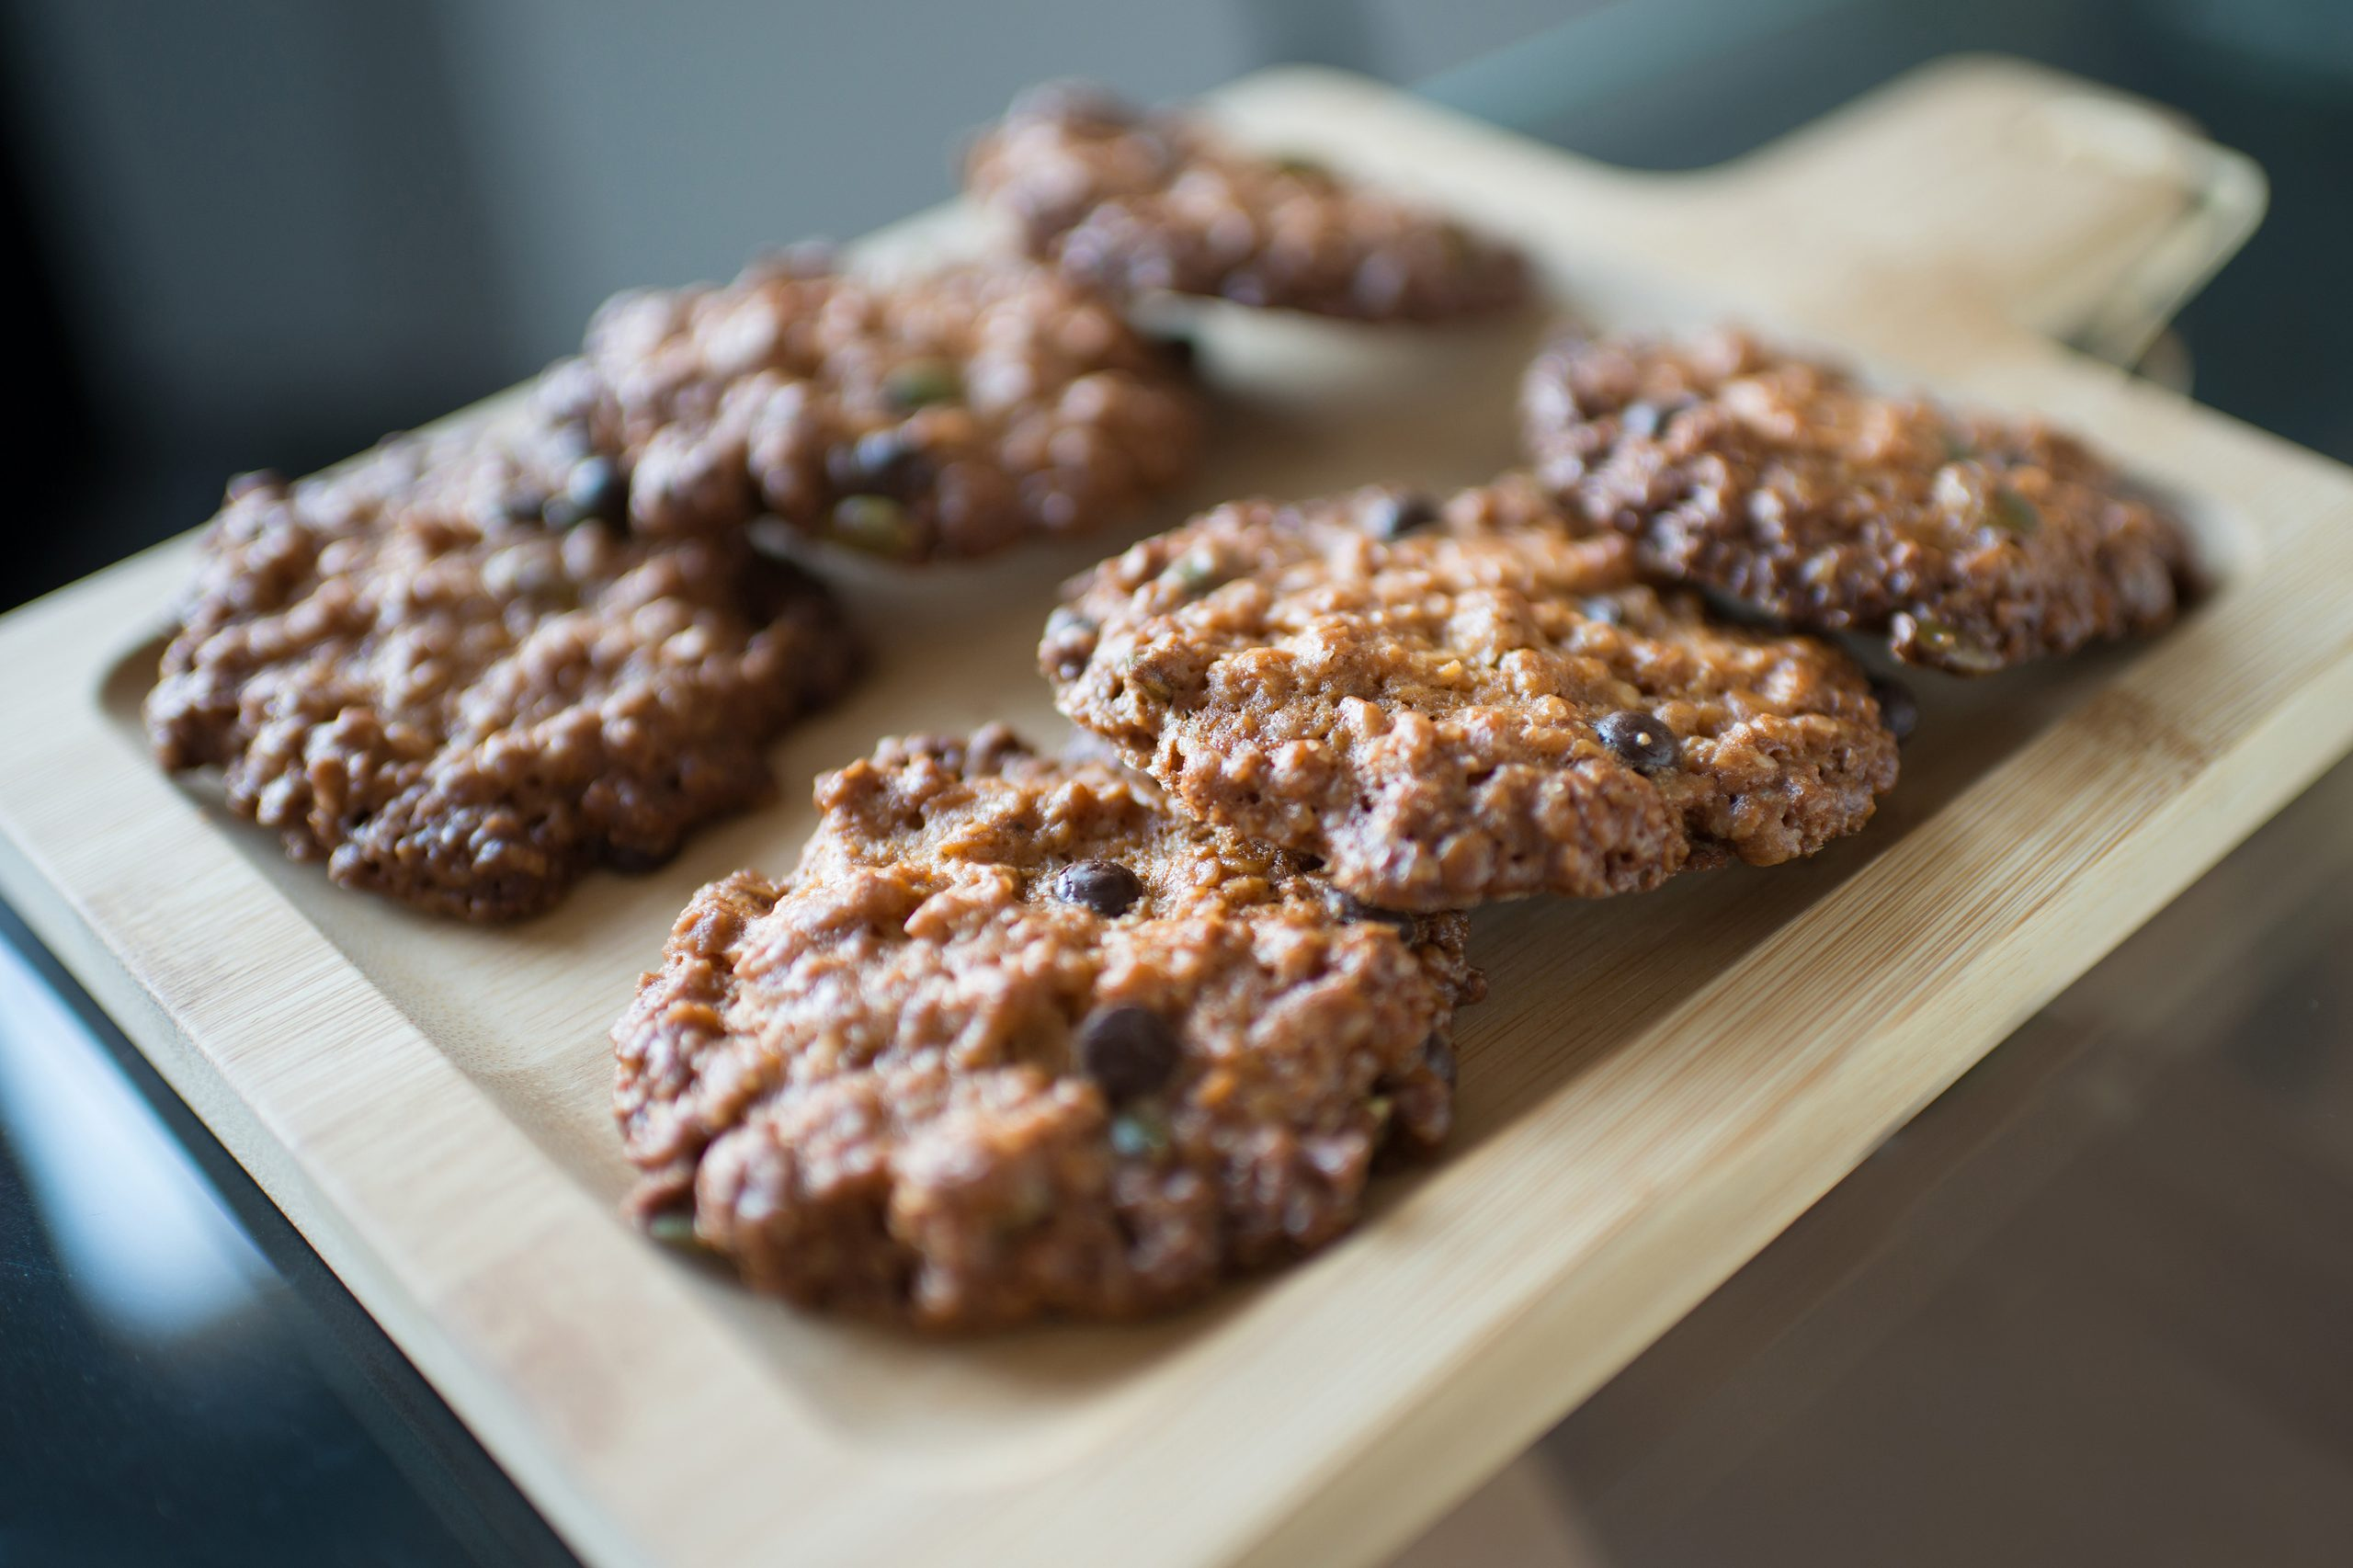 [RECIPE] Deceptively simple sugar-free chocolate chip oatmeal cookies